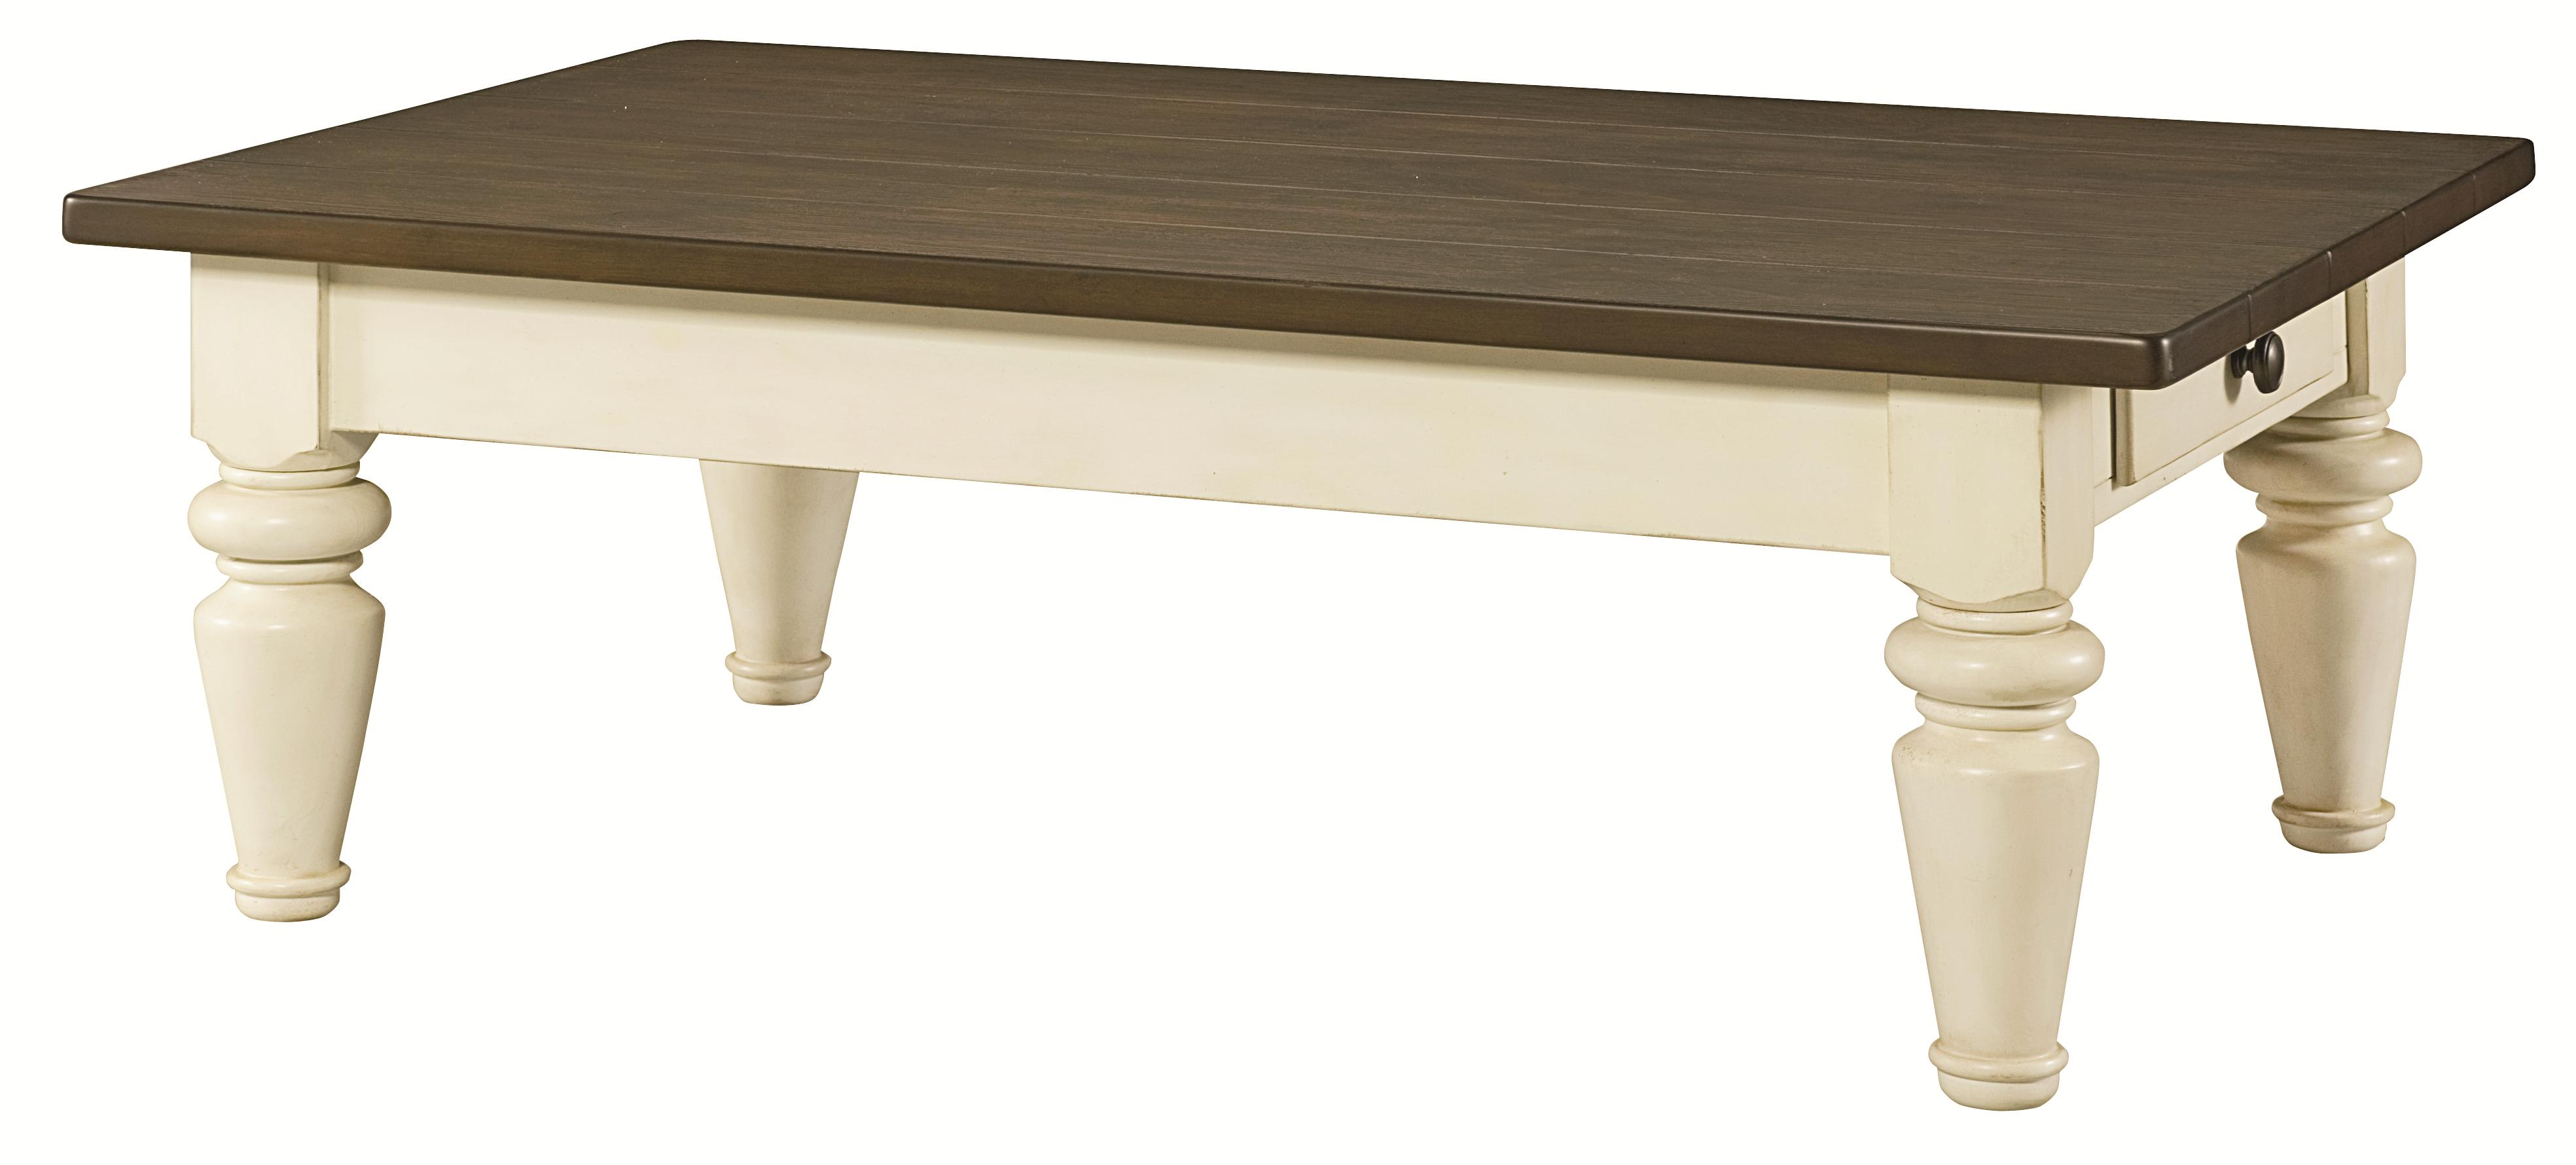 hammary heartland rectangular cocktail table with drawer. Black Bedroom Furniture Sets. Home Design Ideas